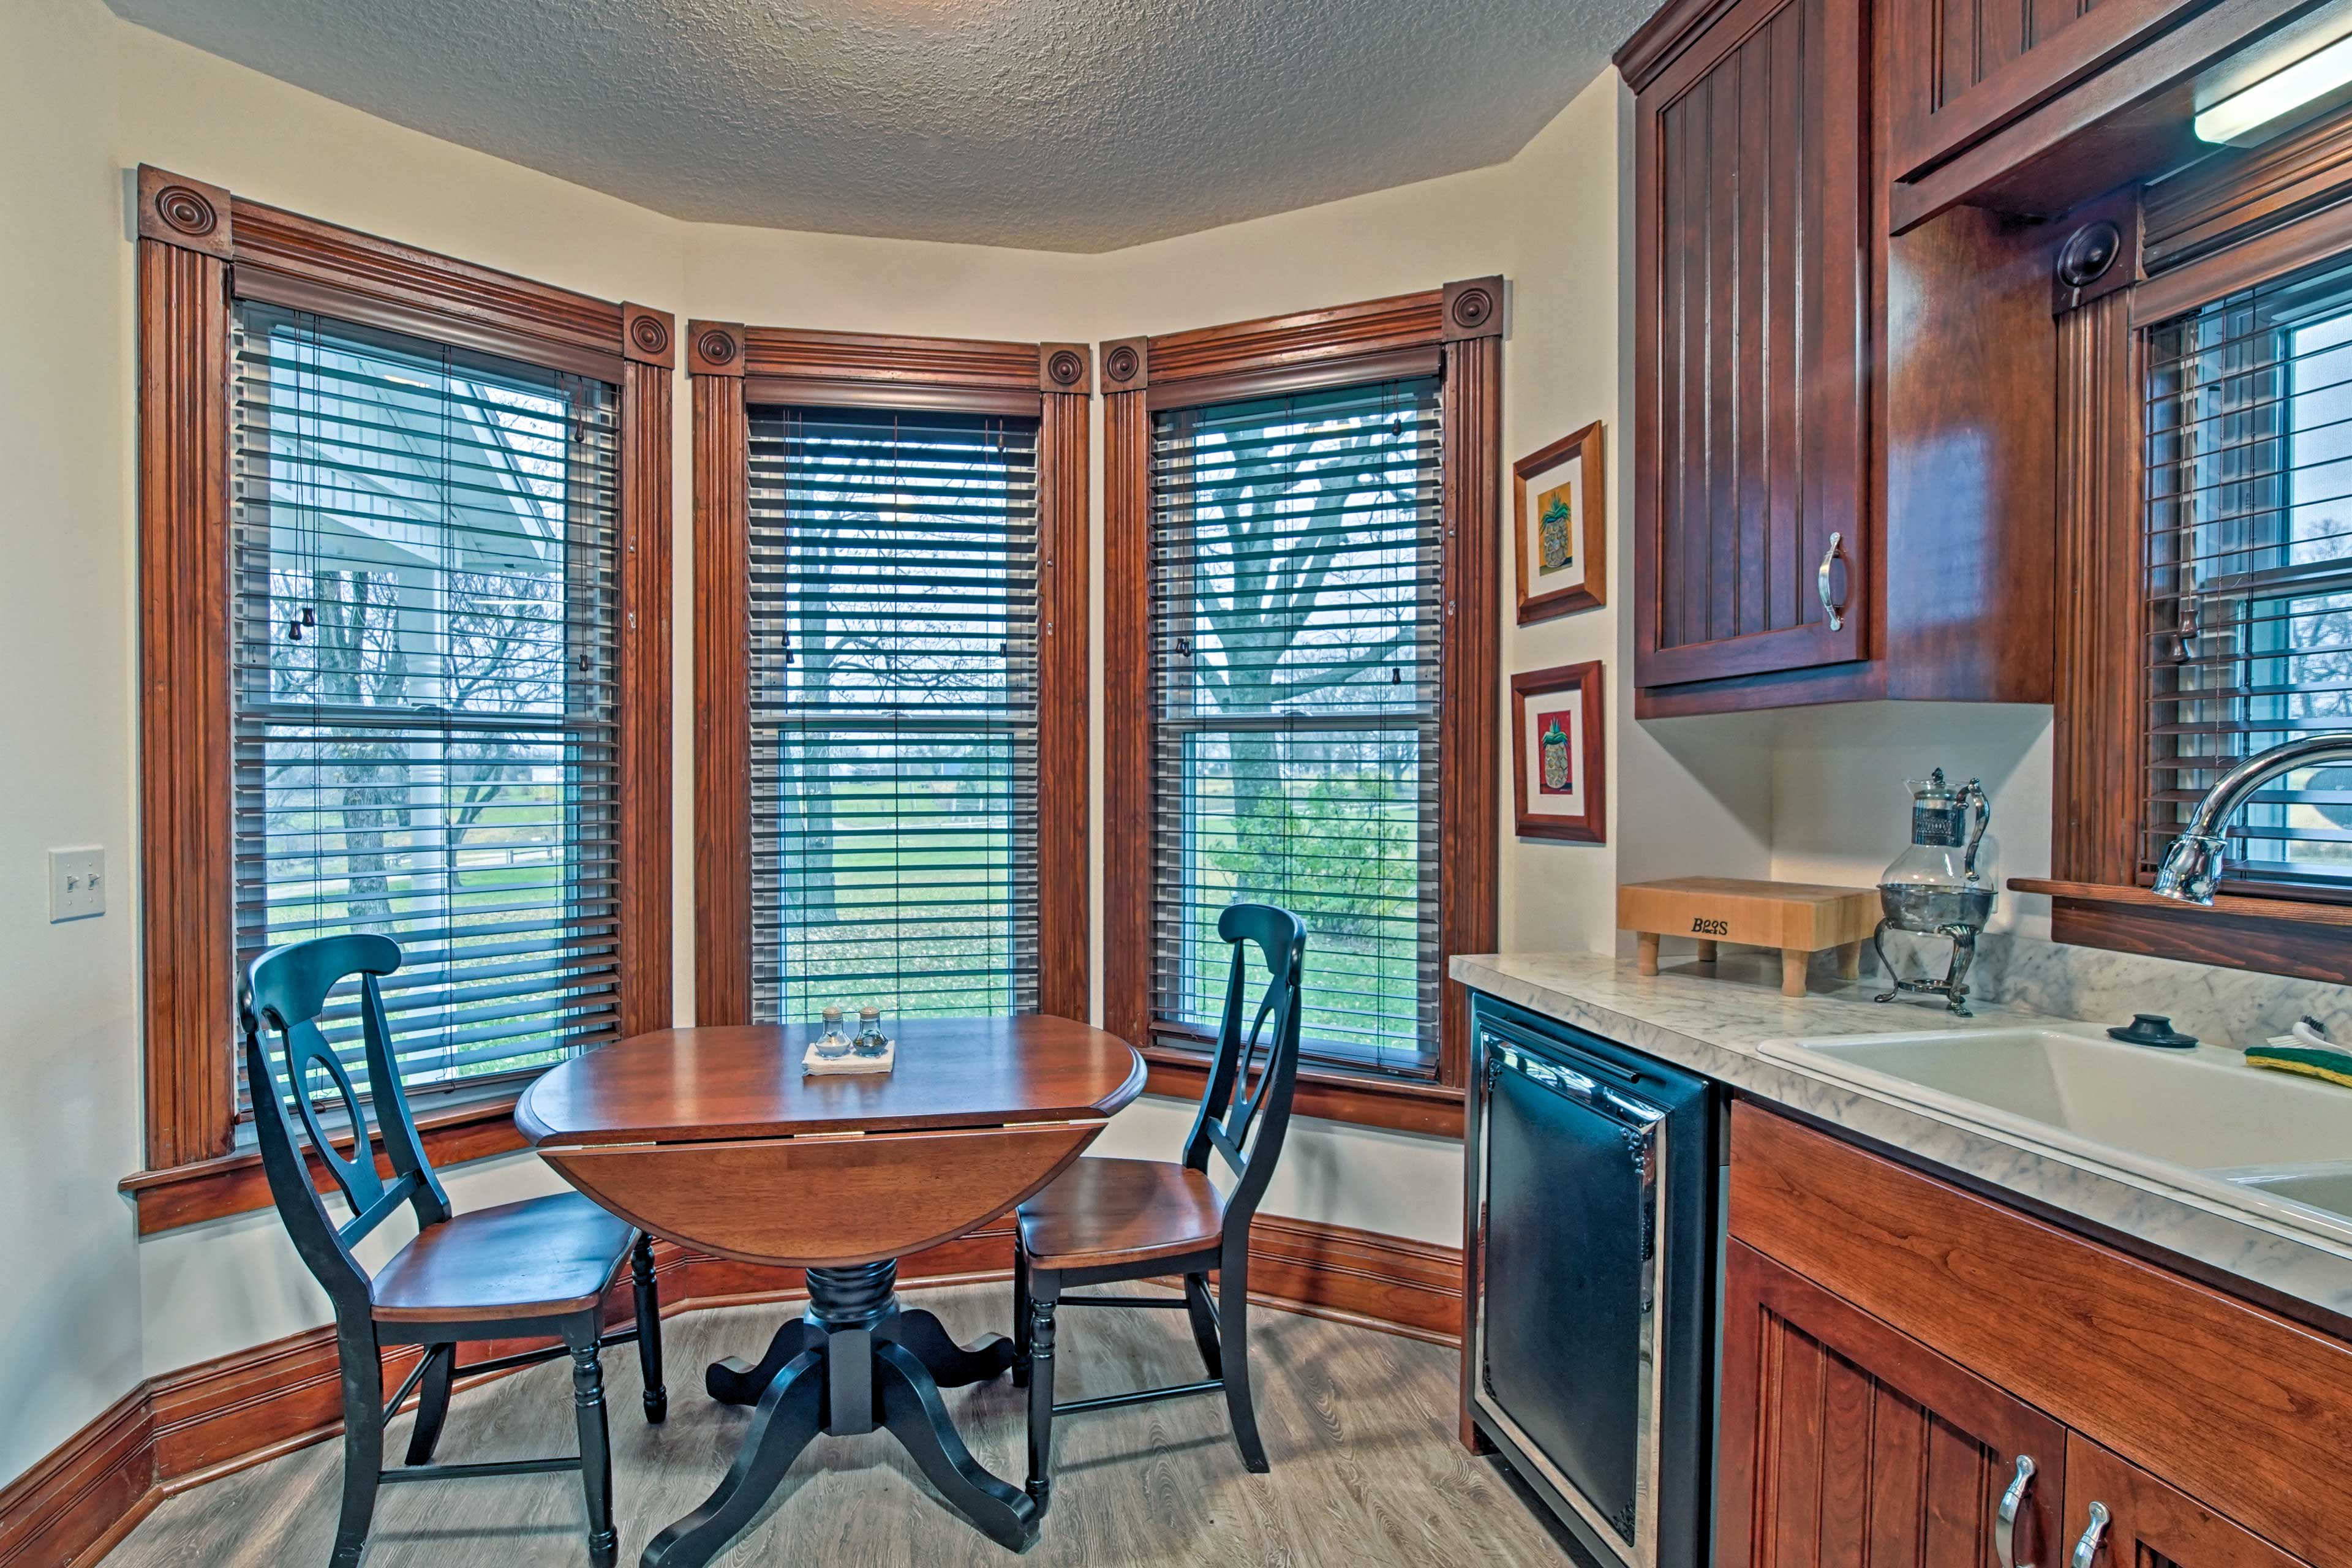 Enjoy coffee and cereal at the cozy breakfast table.